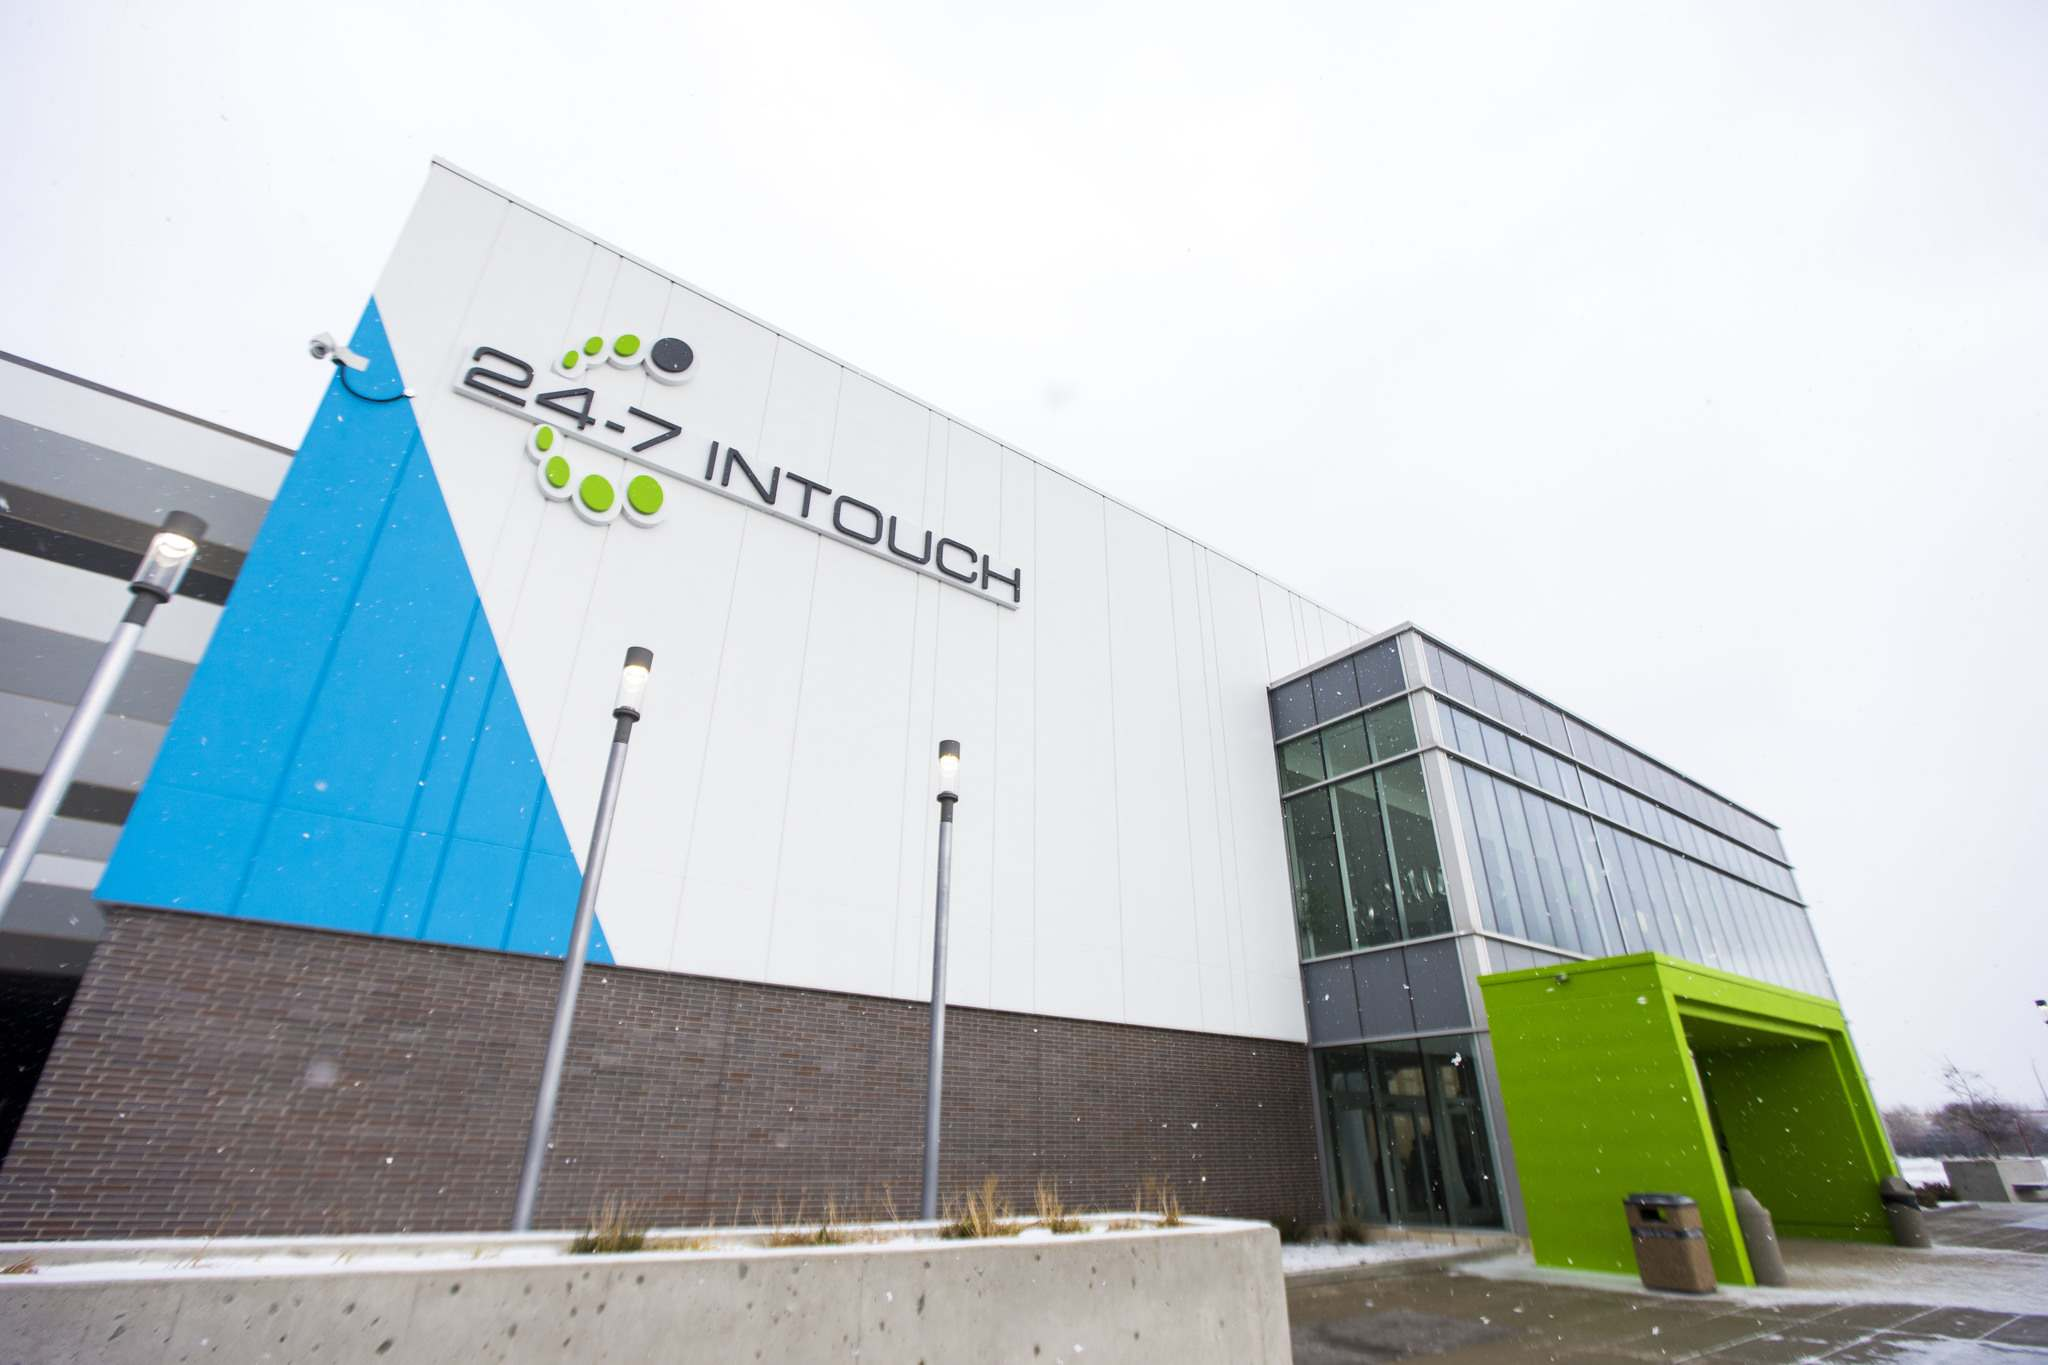 photos by MIKAELA MACKENZIE / WINNIPEG FREE PRESS</p><p>The new 24-7 Intouch campus at Polo Park (above and below), a customer-contact centre, employs 500 people. That number may double in a few years.</p>